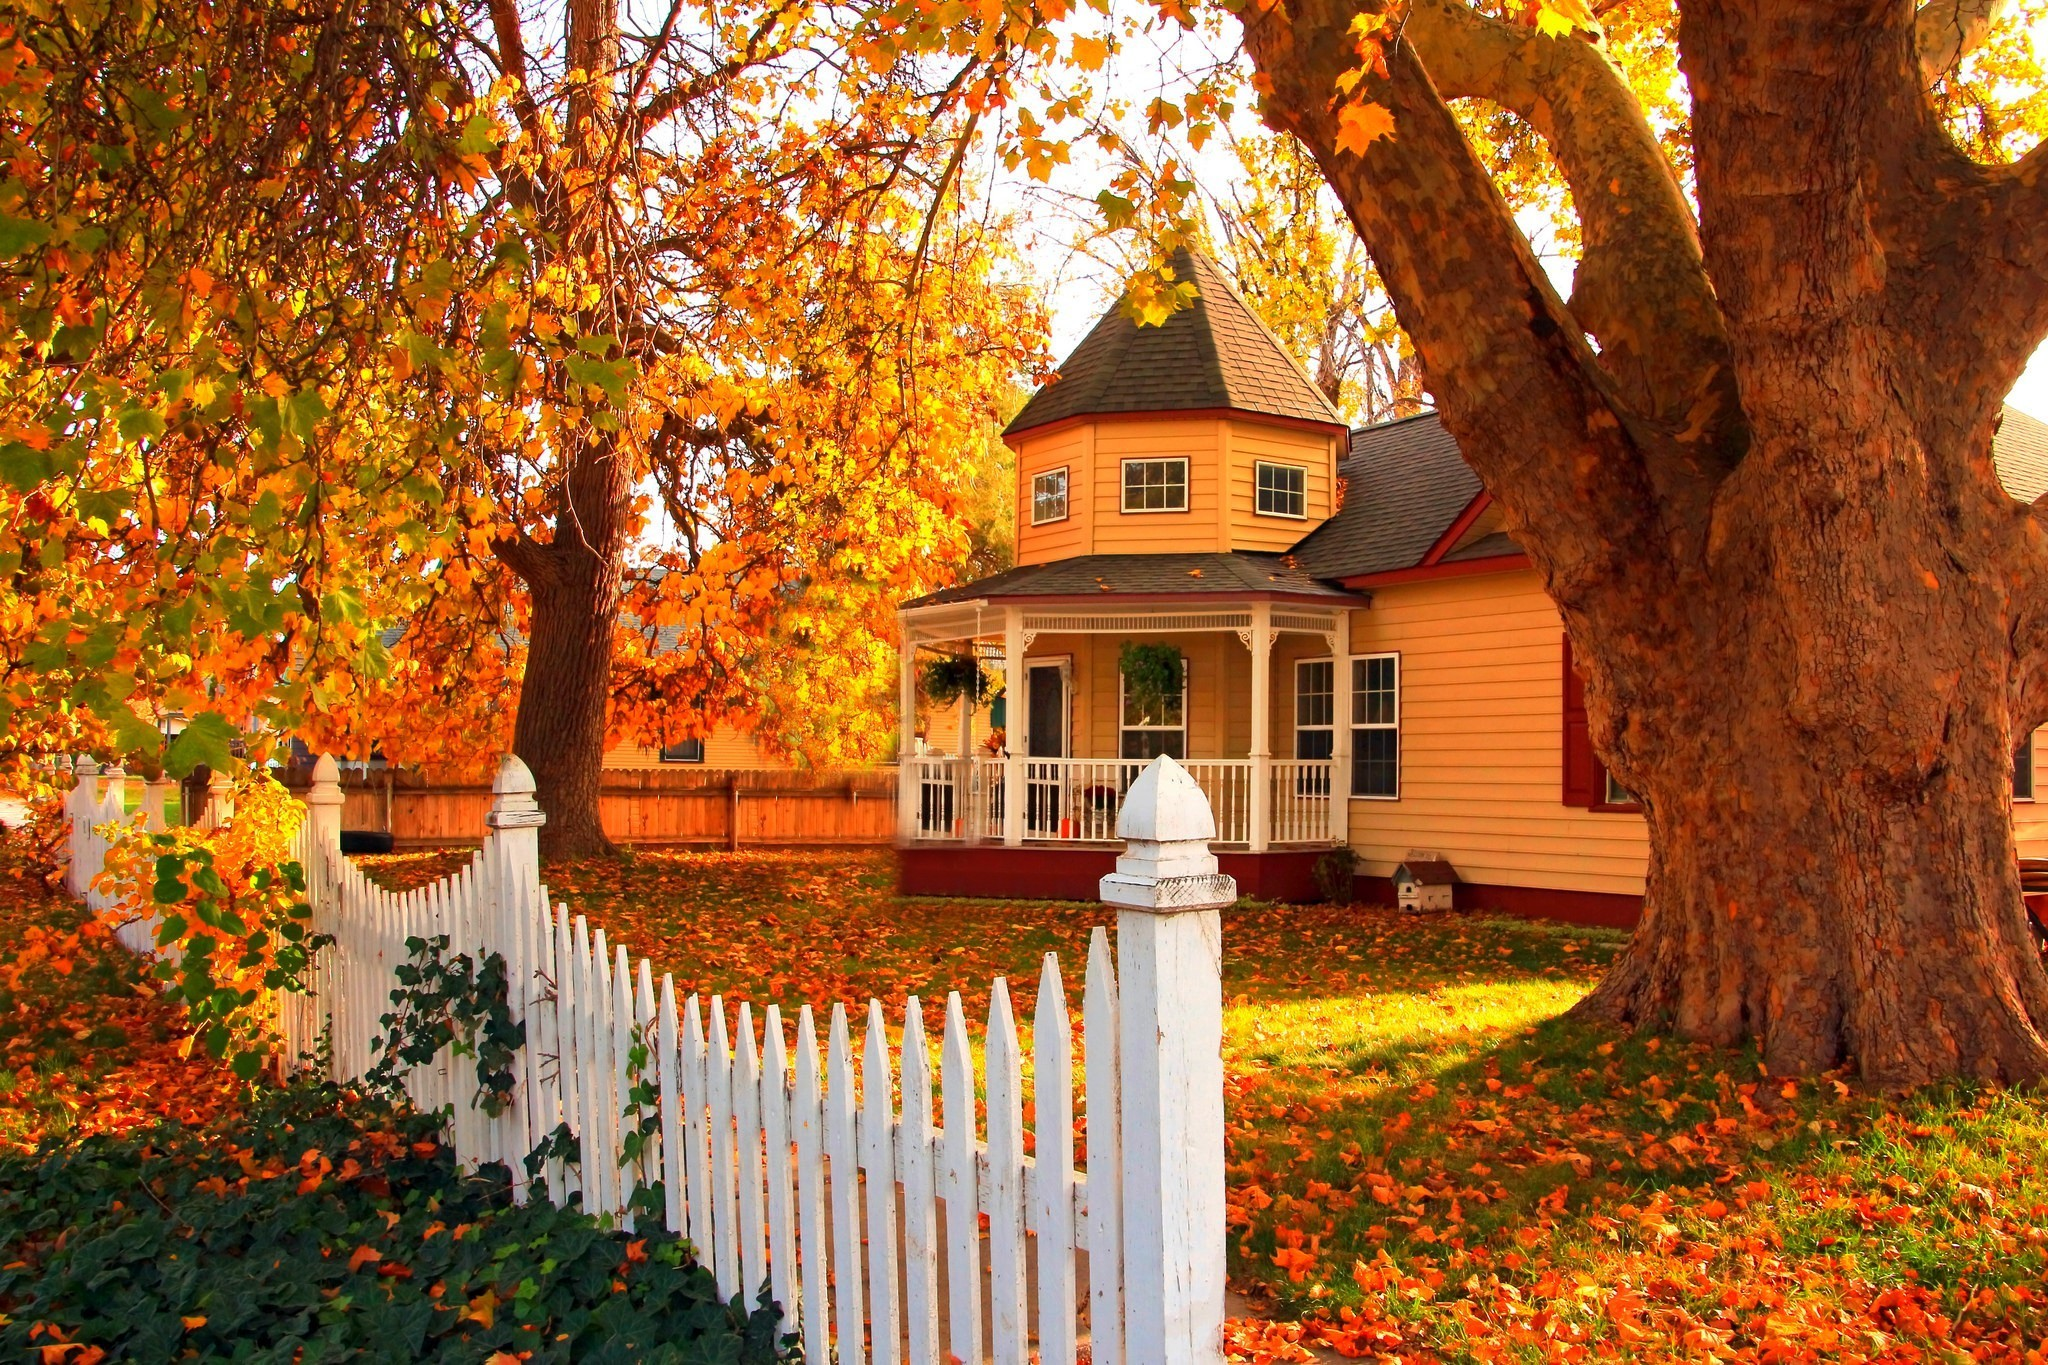 Man Made – House Man Made Orange Architecture Fence Fall Tree Leaf Wallpaper